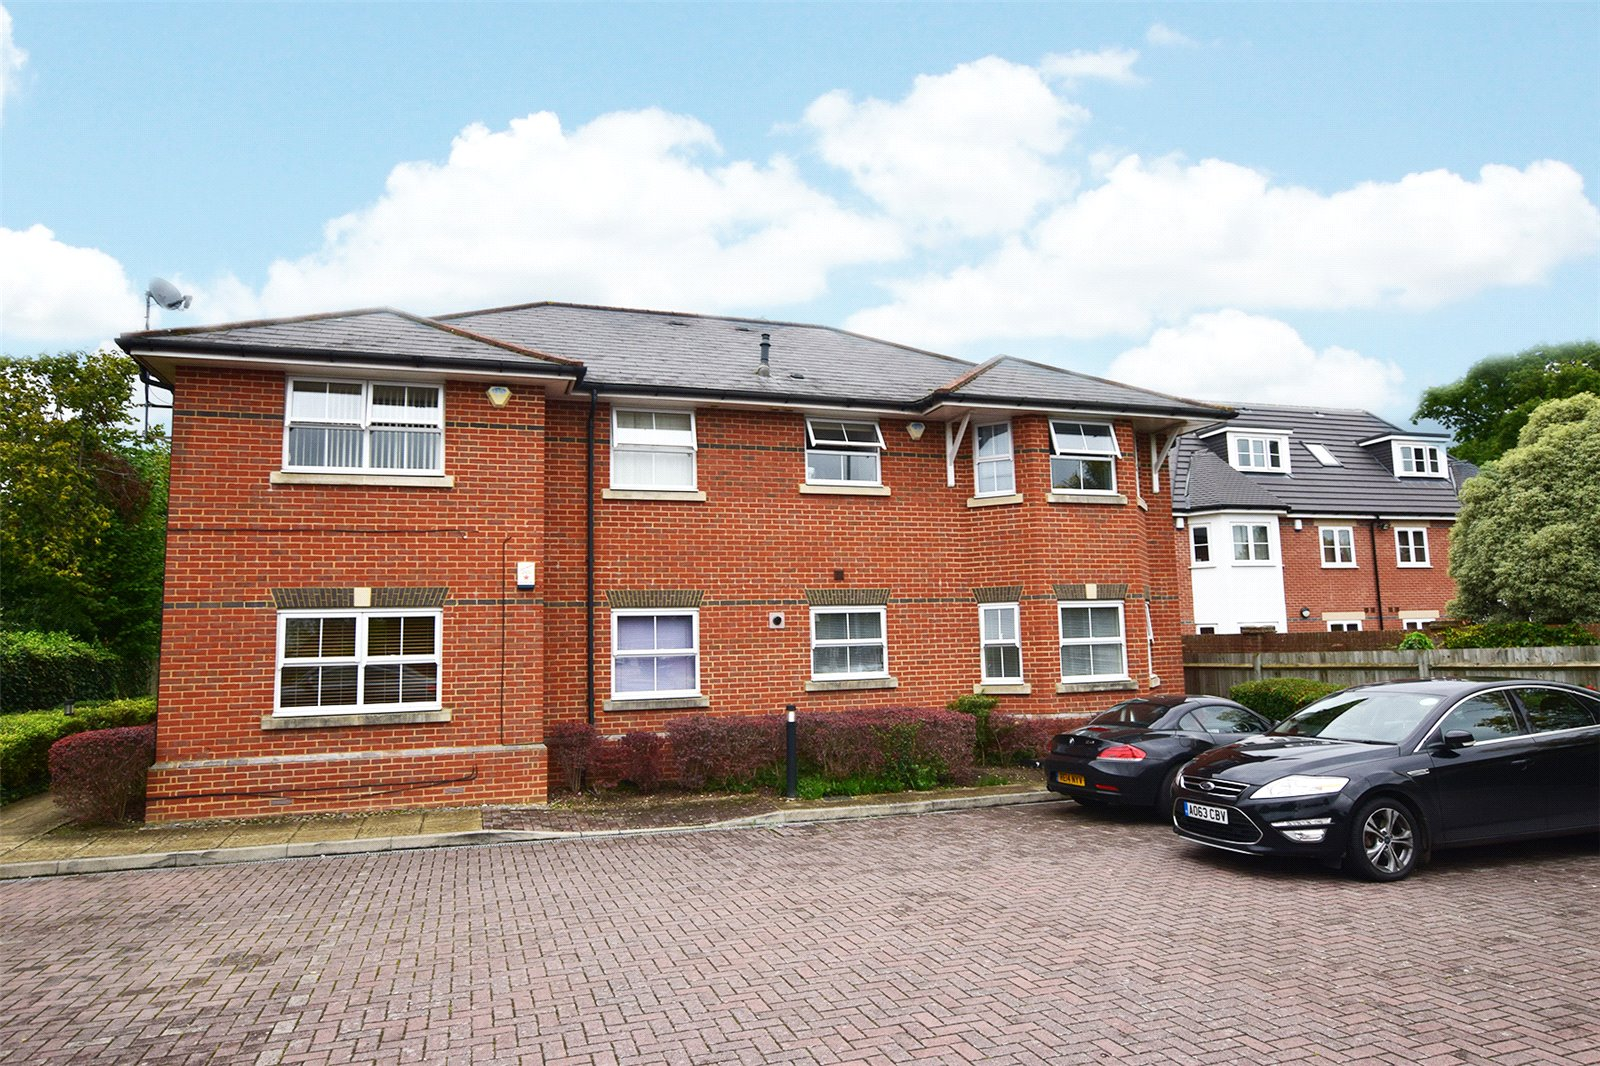 2 Bedrooms Apartment Flat for sale in Oakwood House, Wokingham Road, Earley, Reading, RG6